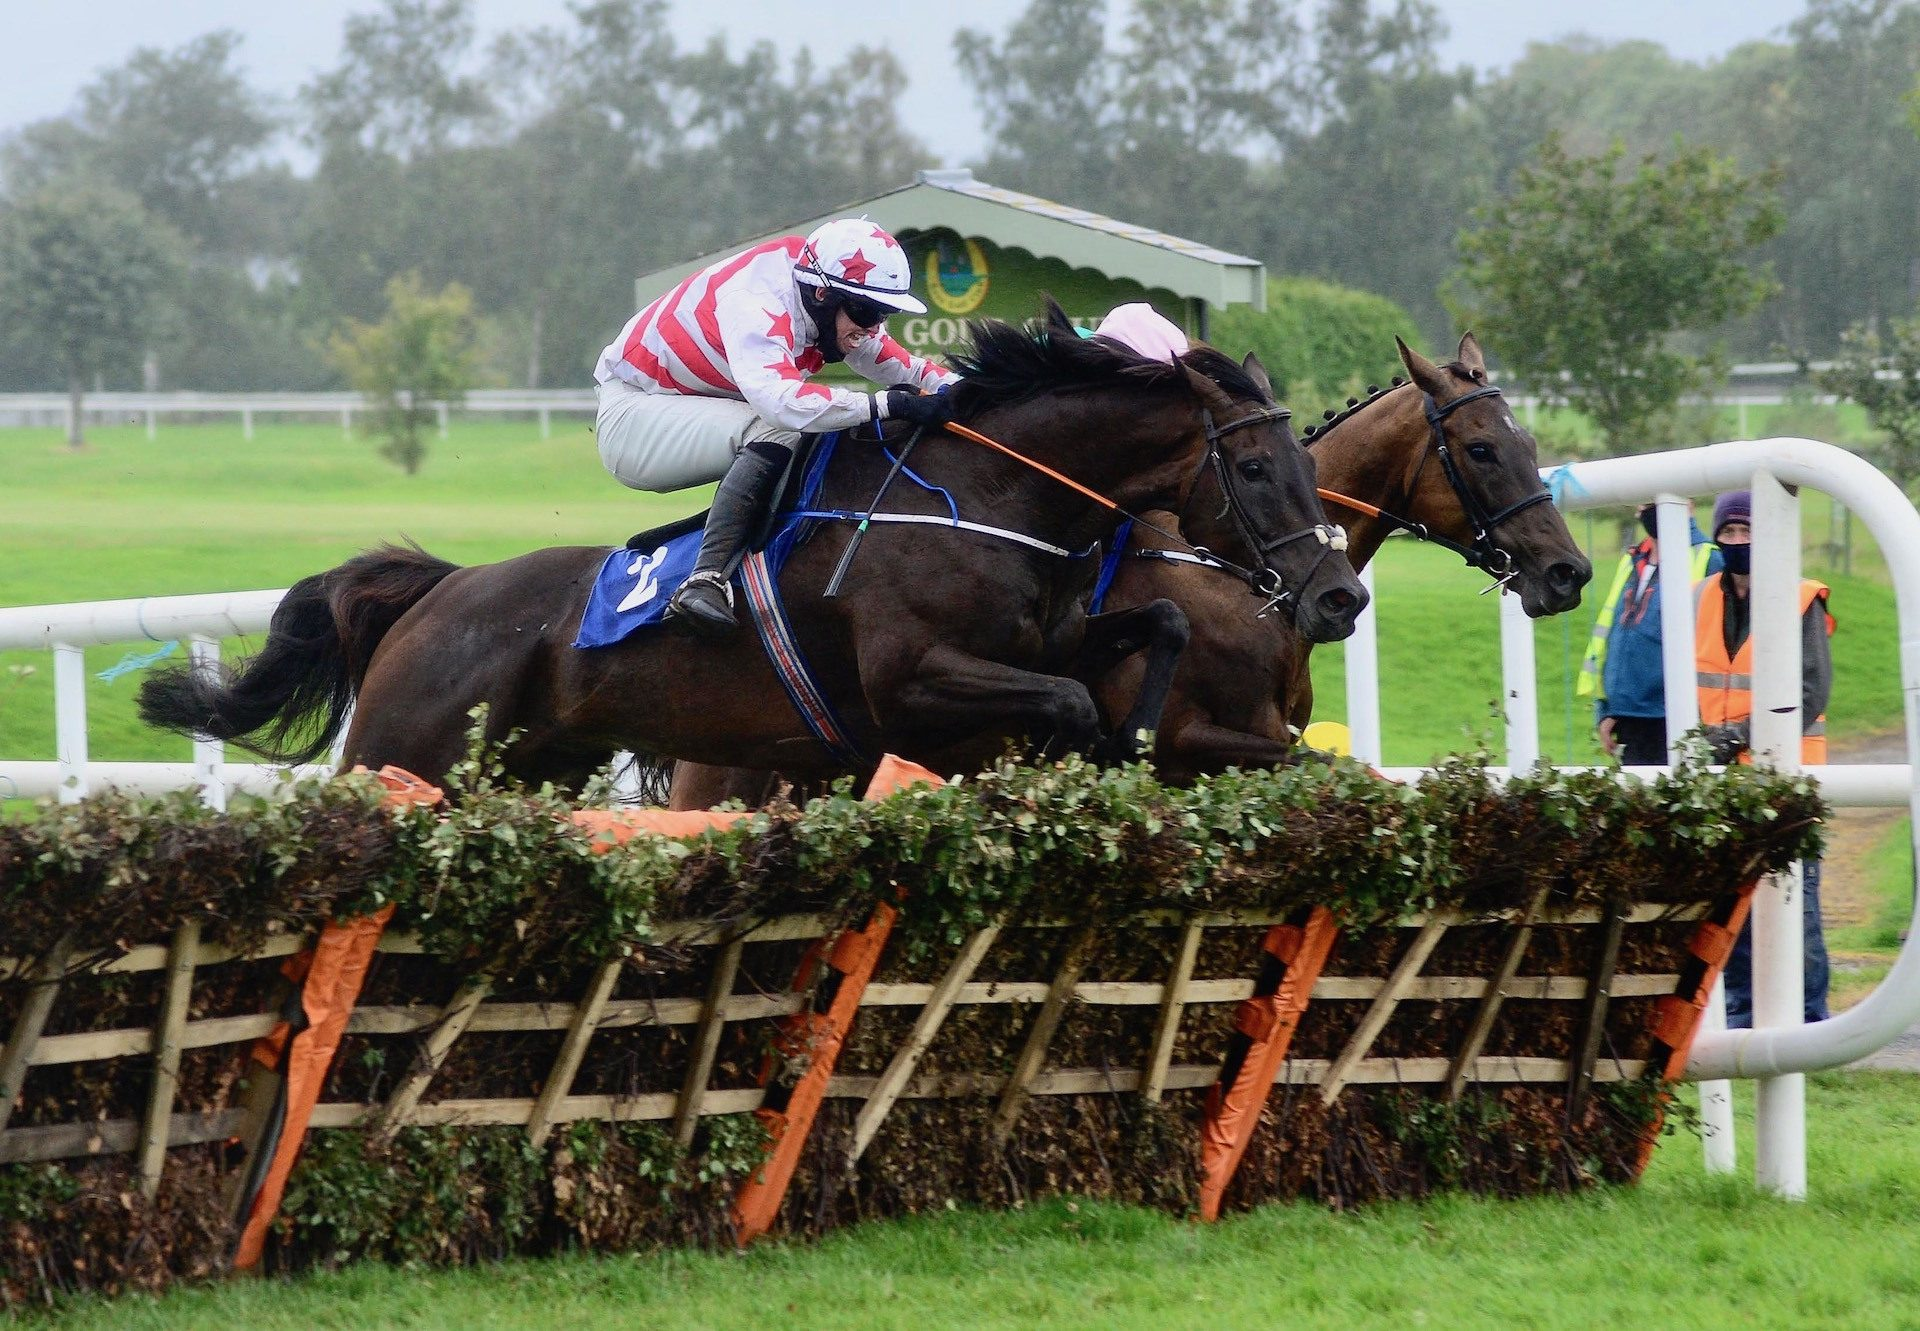 West Cork Wildway (Yeats) Wins The Maiden Hurdle At Killarney